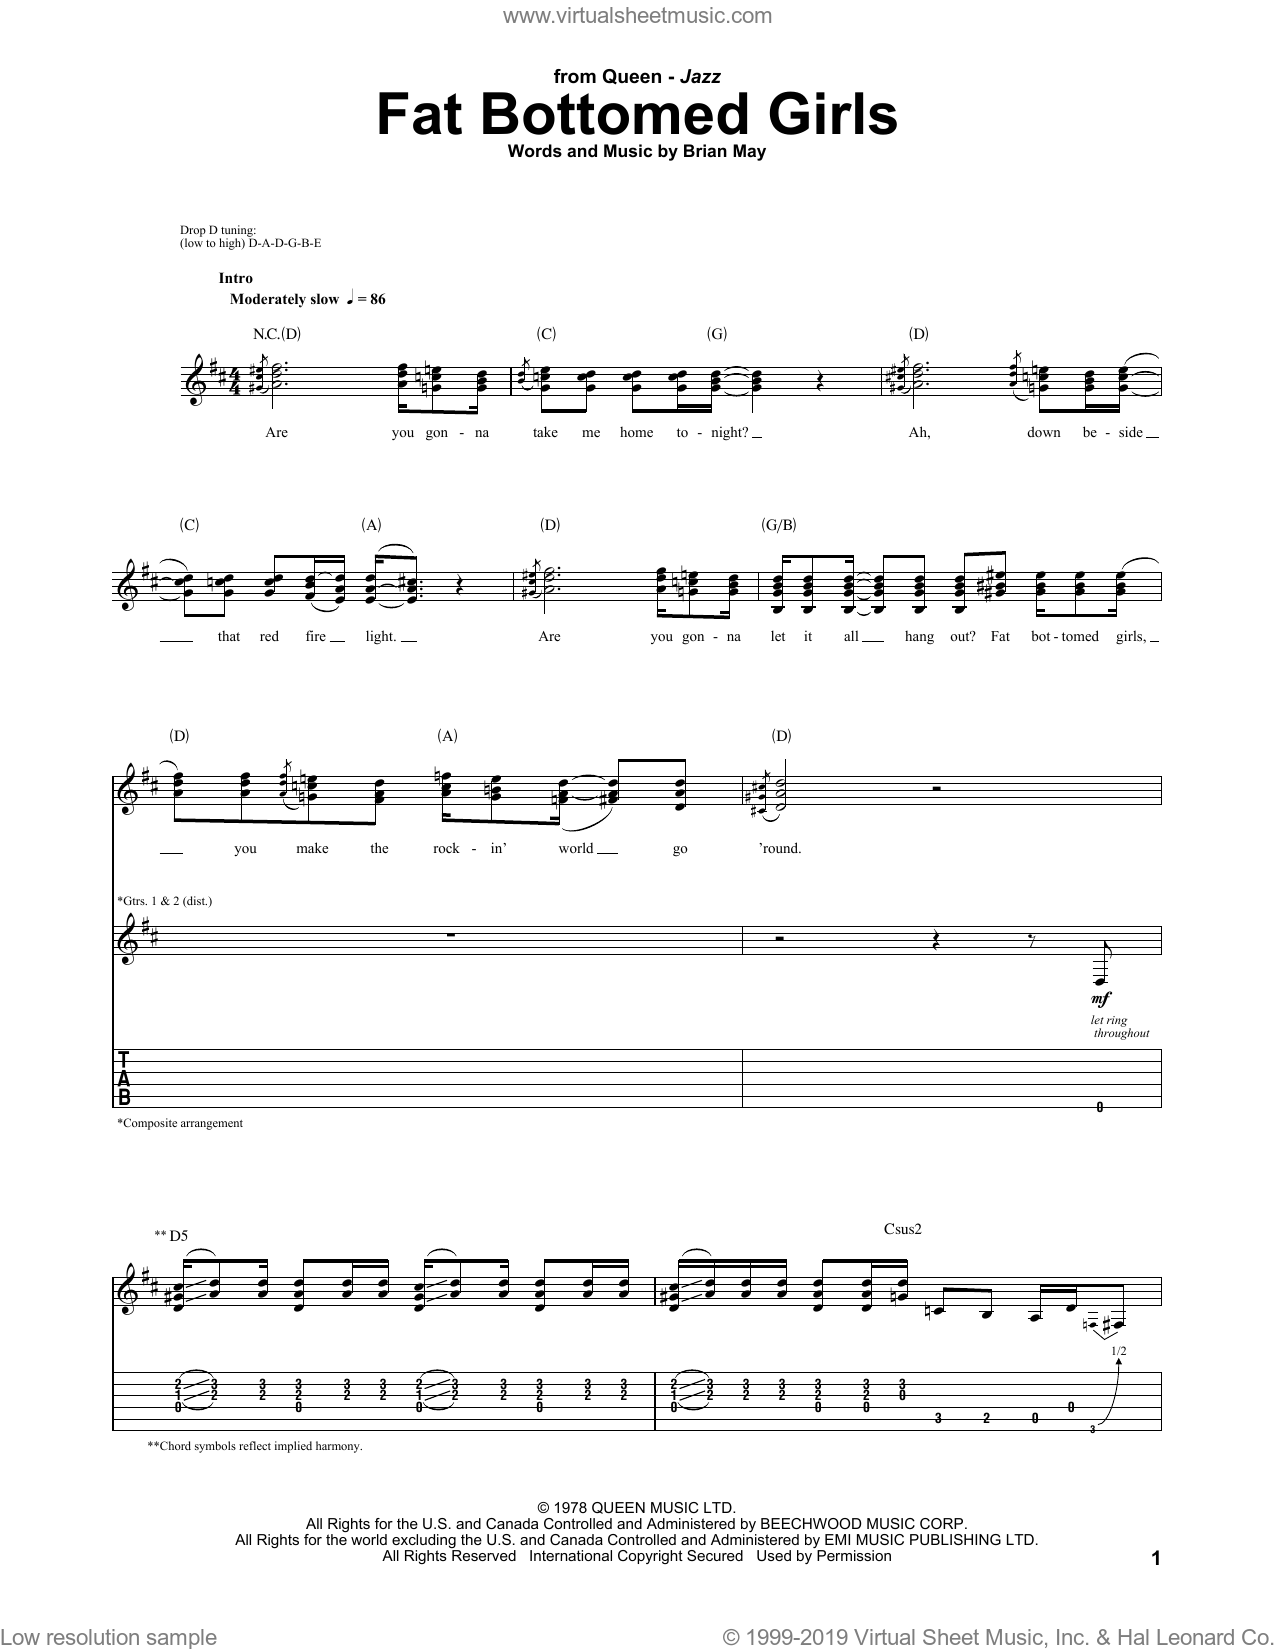 Fat Bottomed Girls sheet music for guitar (tablature) by Queen, Glee Cast and Brian May, intermediate skill level